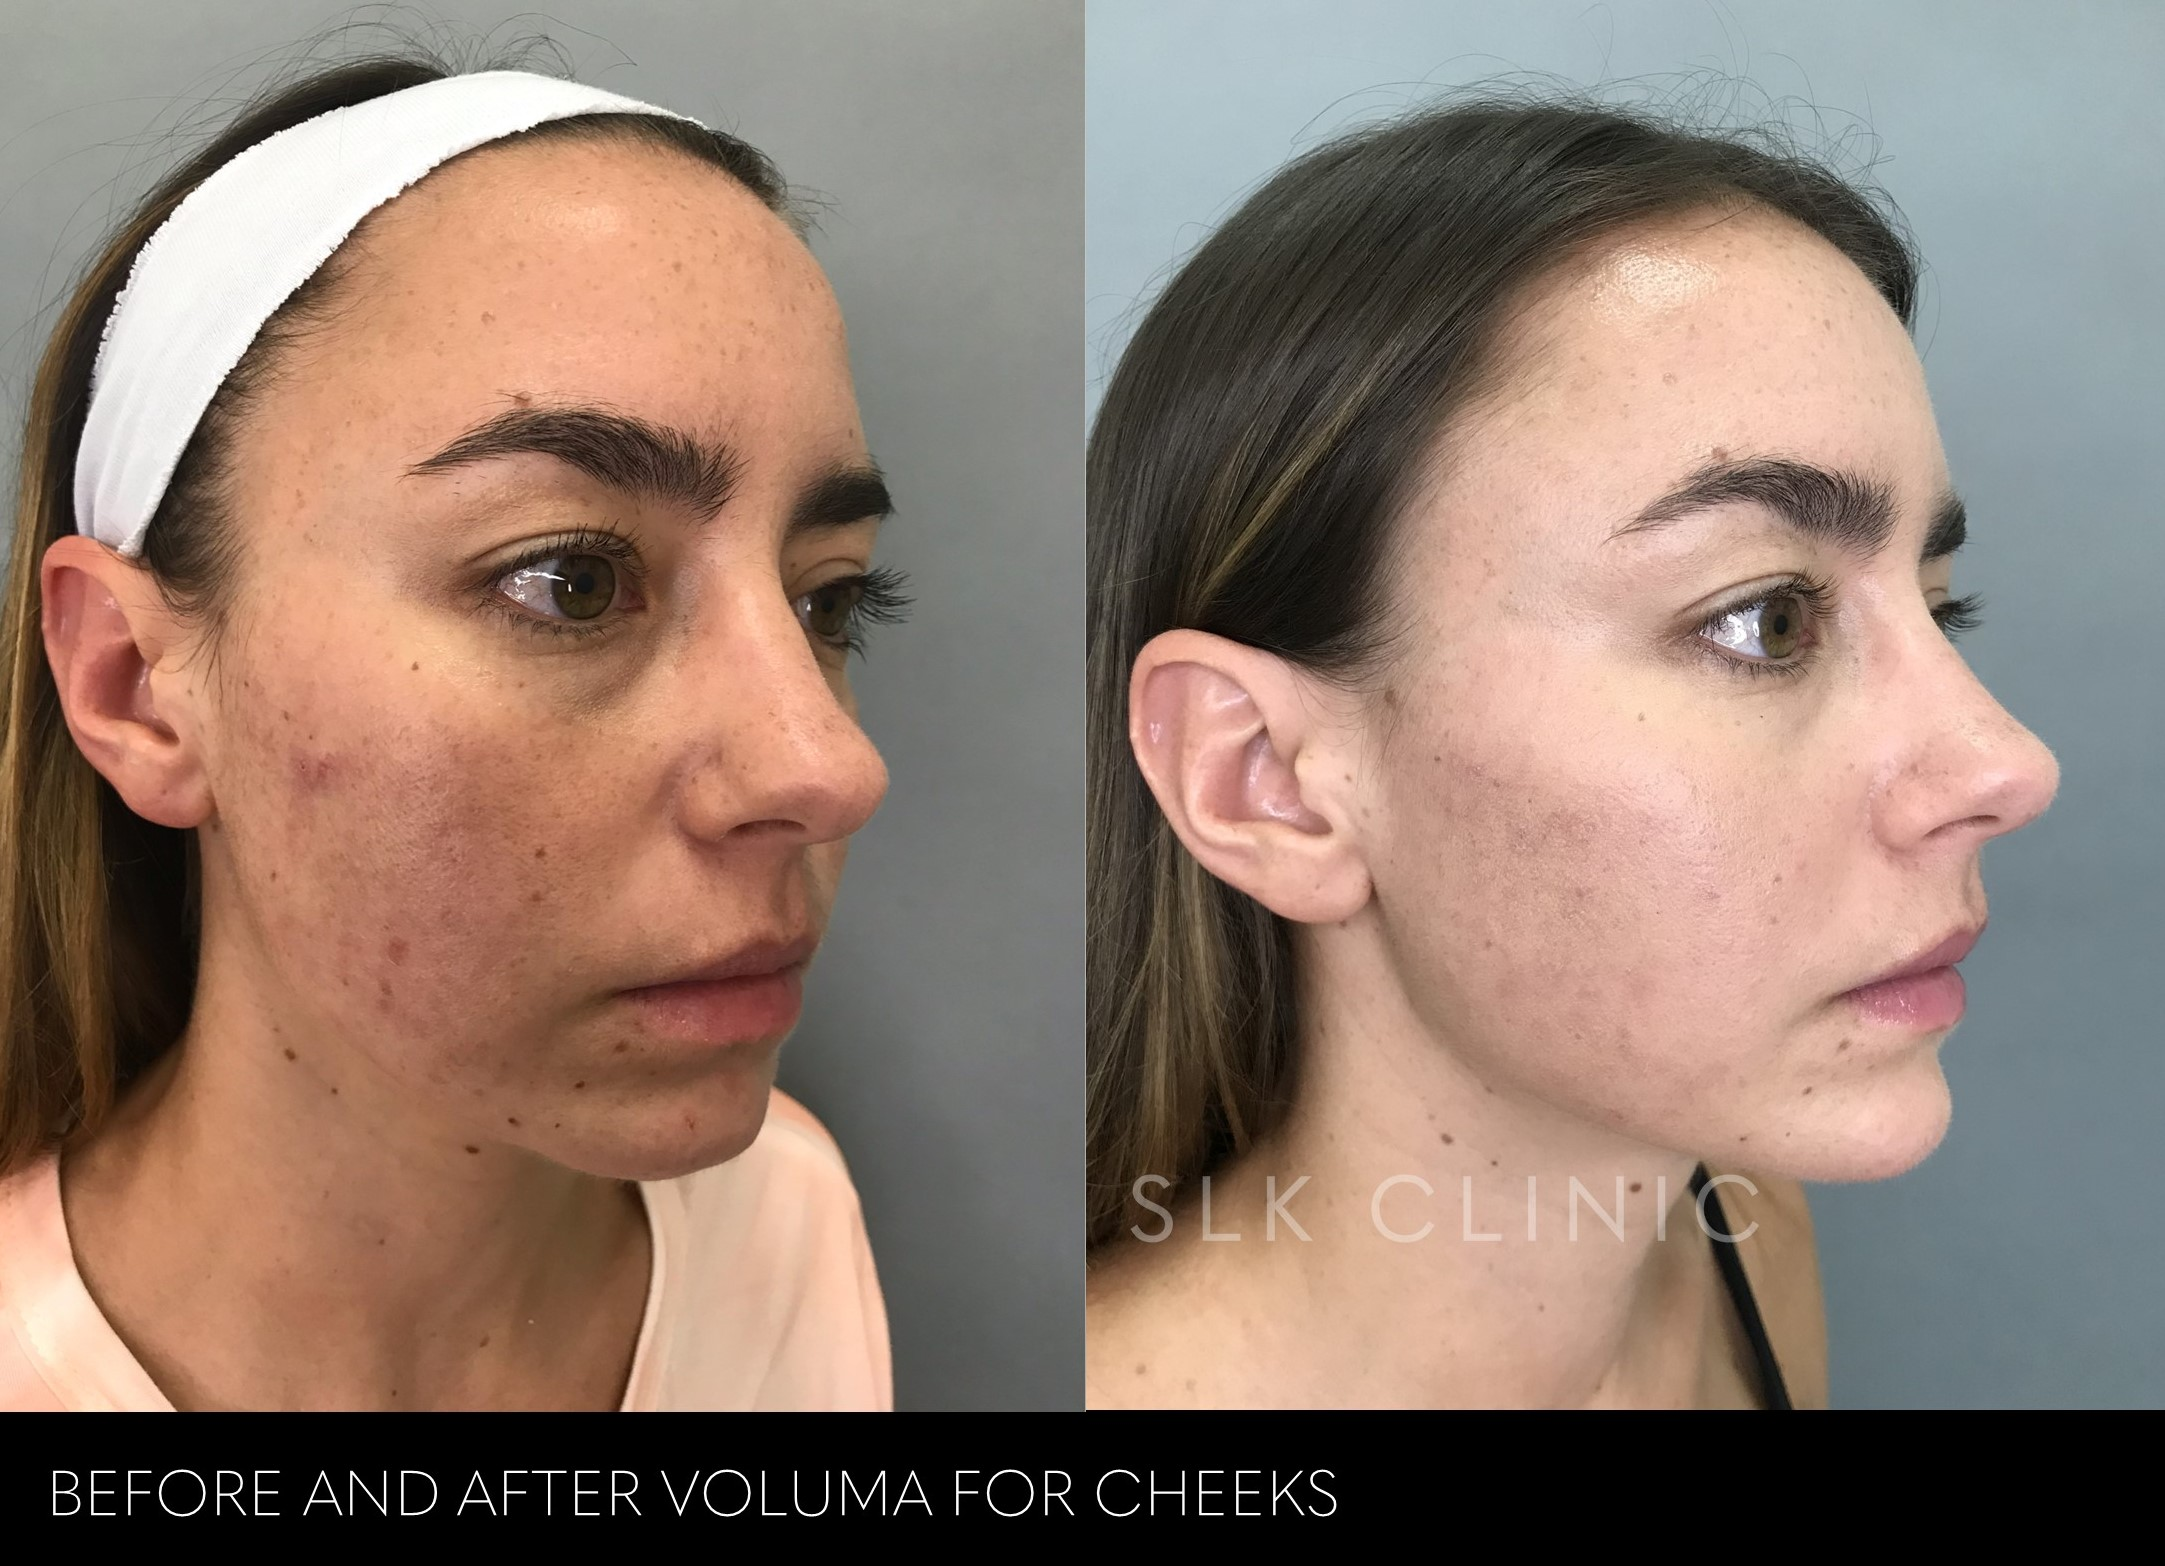 before and after 1 syringe of voluma cheek filler nashville young 20s girl